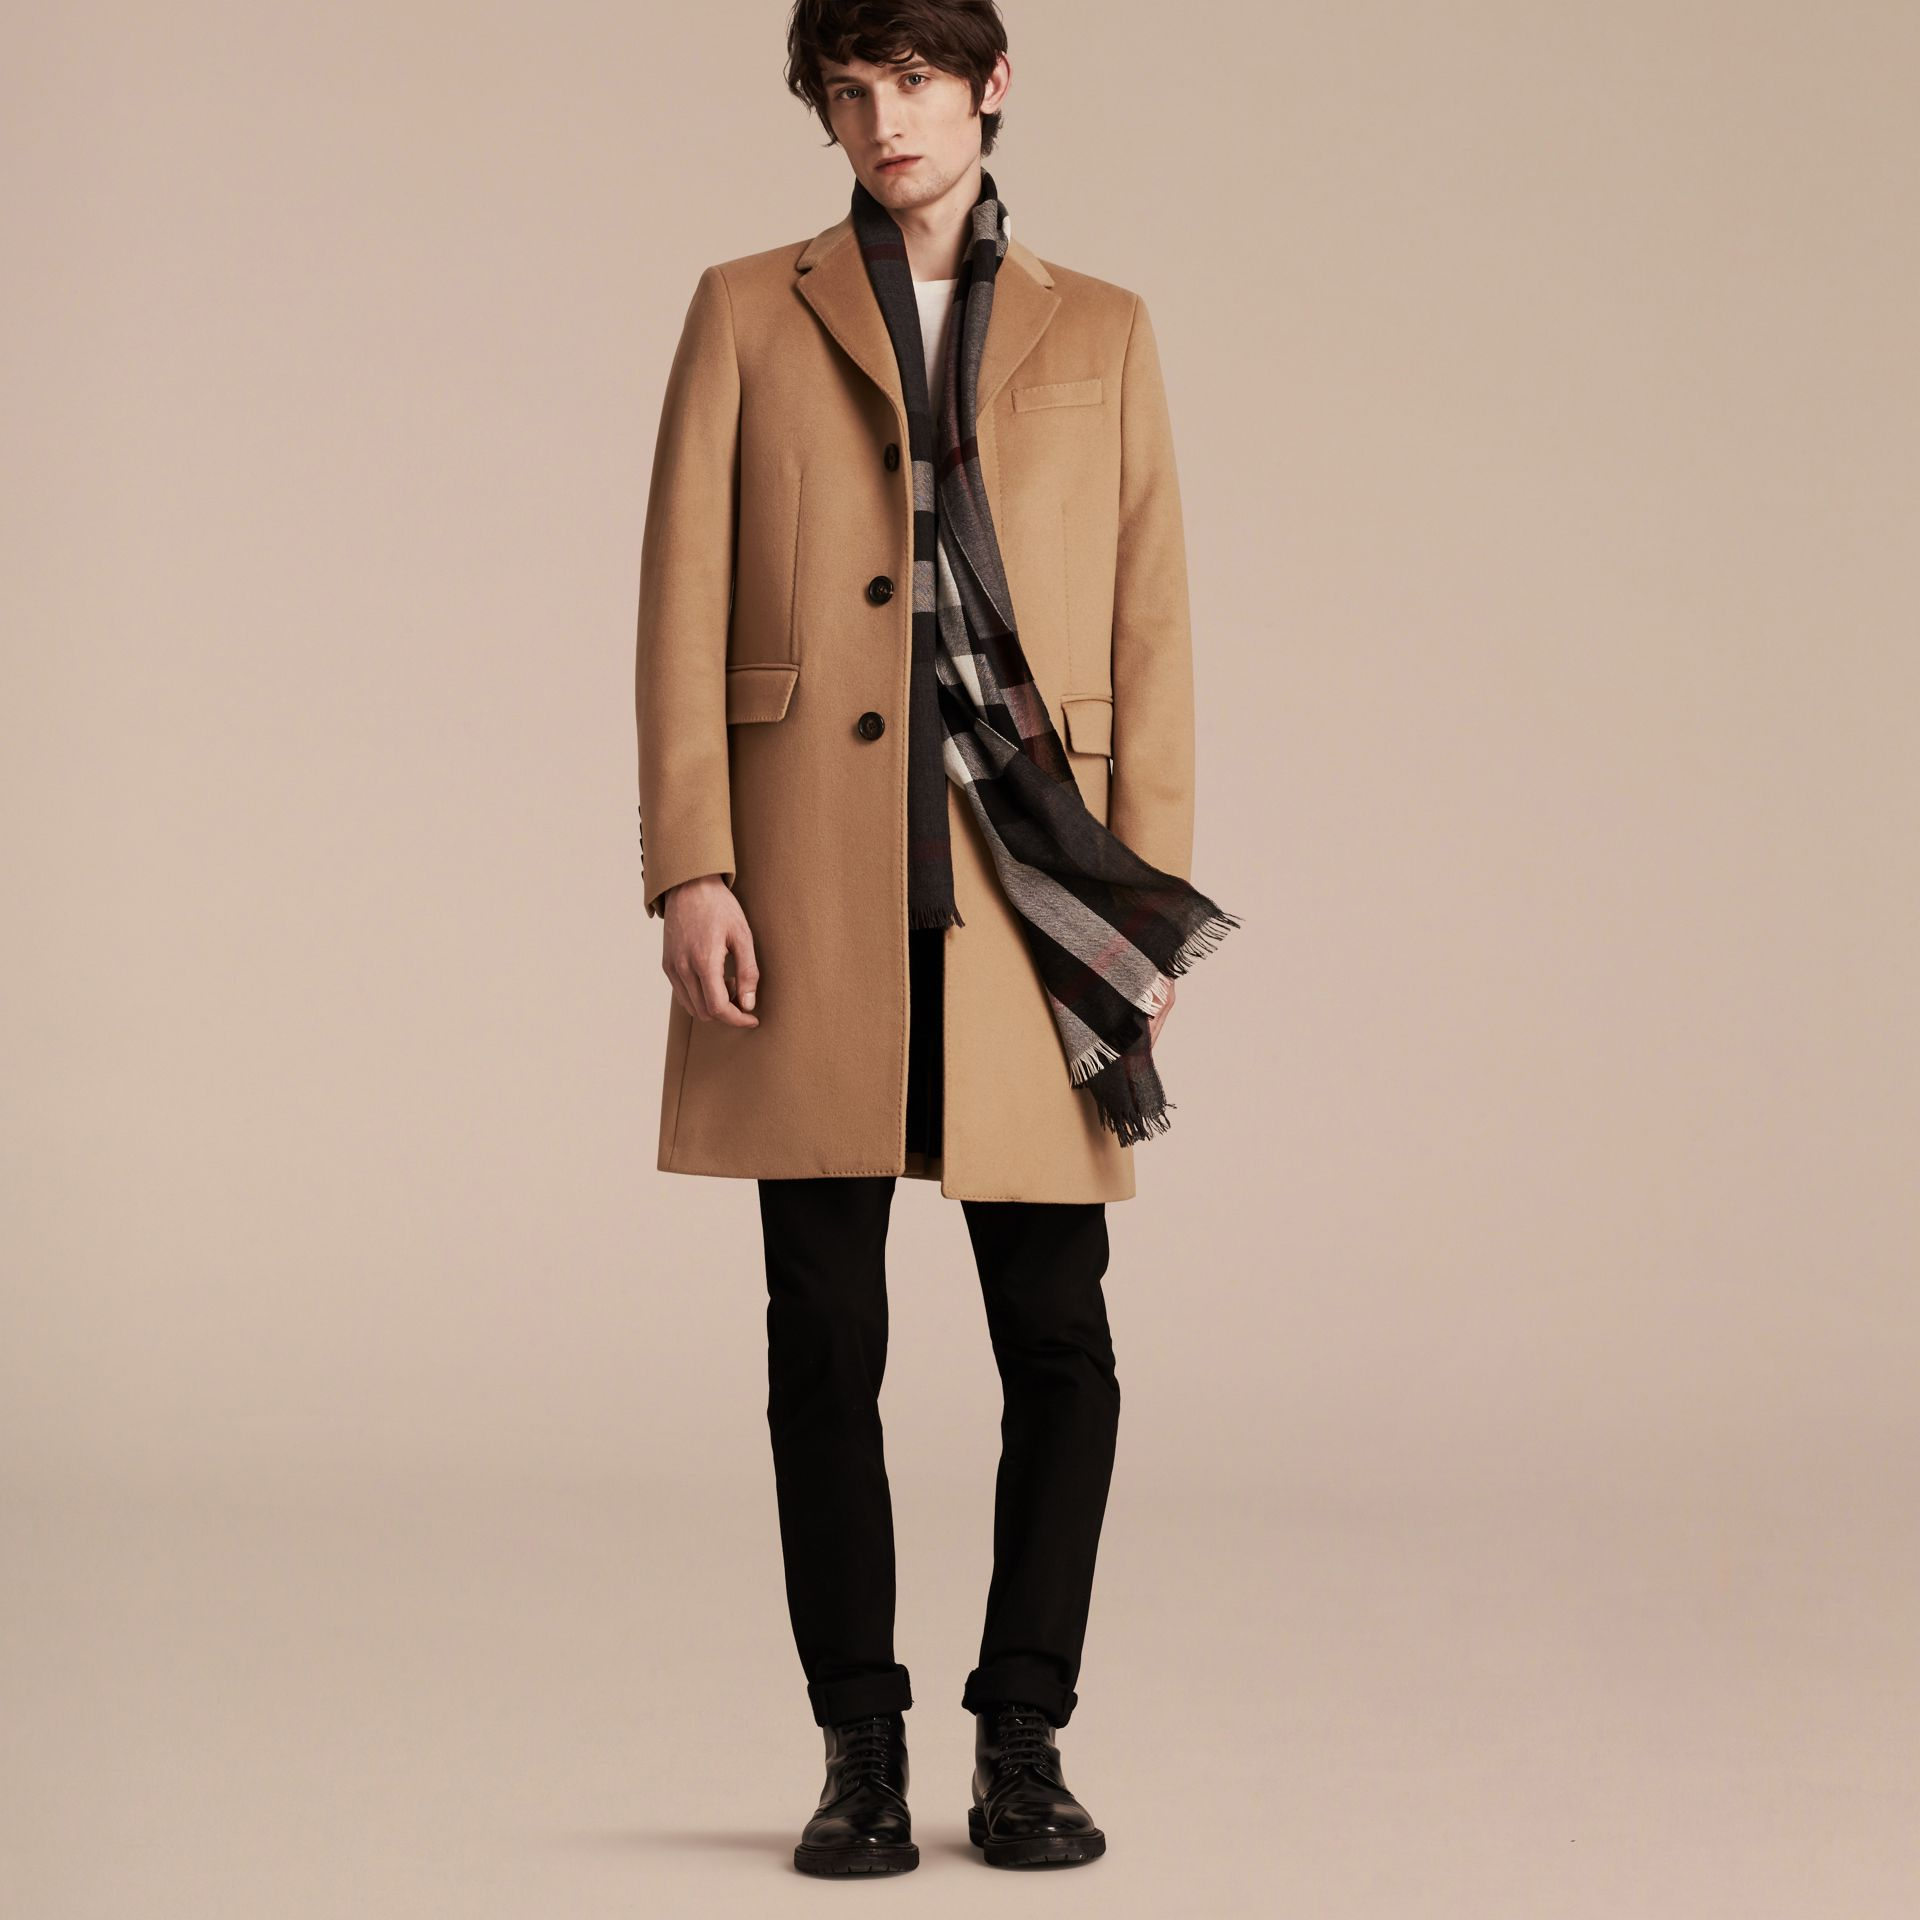 Wool Cashmere Tailored Coat in Camel - Men | Burberry - gallery image 7